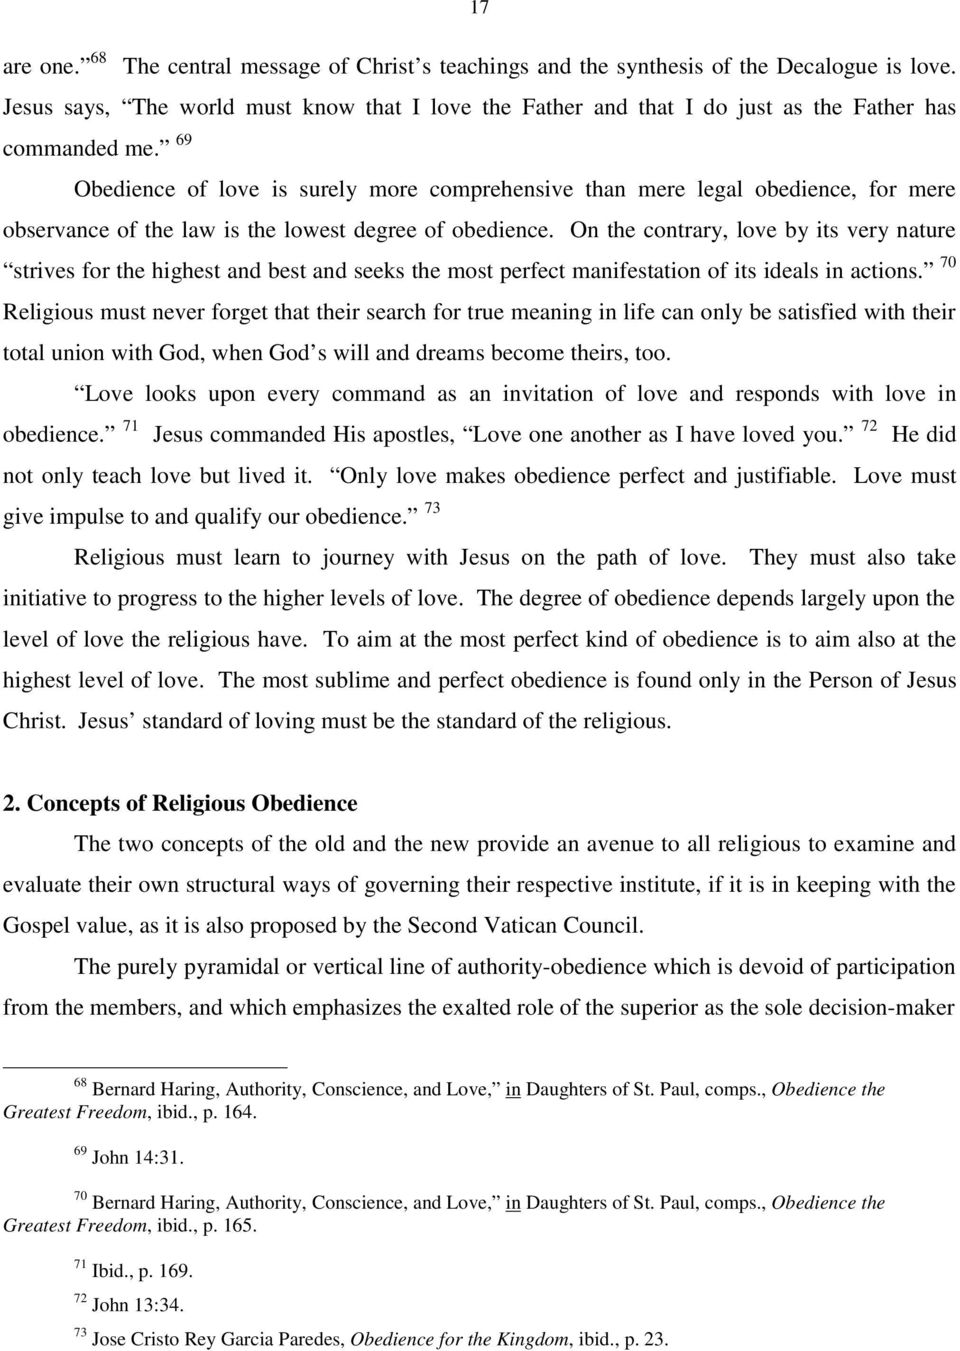 2) Psychological Dimension of Religious Obedience a  The